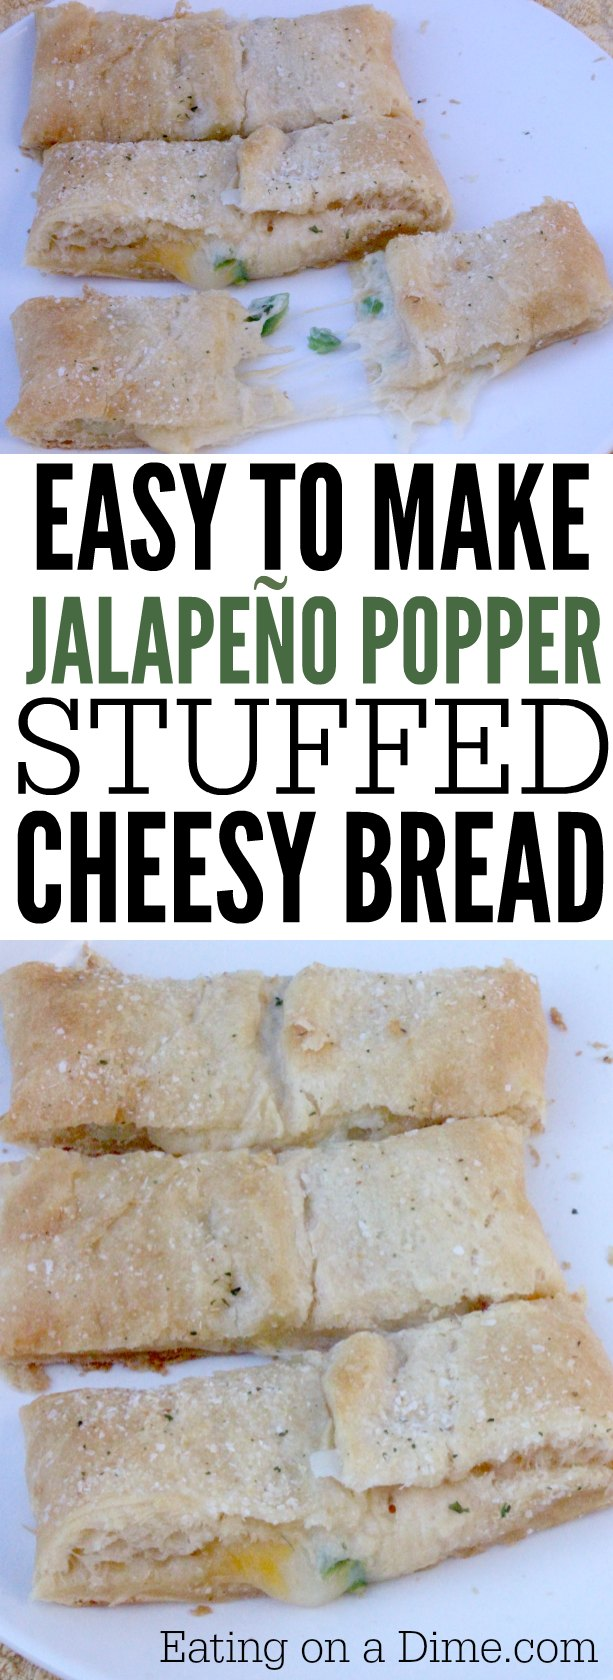 Need an easy bread recipe? This Jalapeño Popper Stuffed Cheesy bread recipe is easy to make and tastes great. Cheesy bread stuffed with Jalapeños.